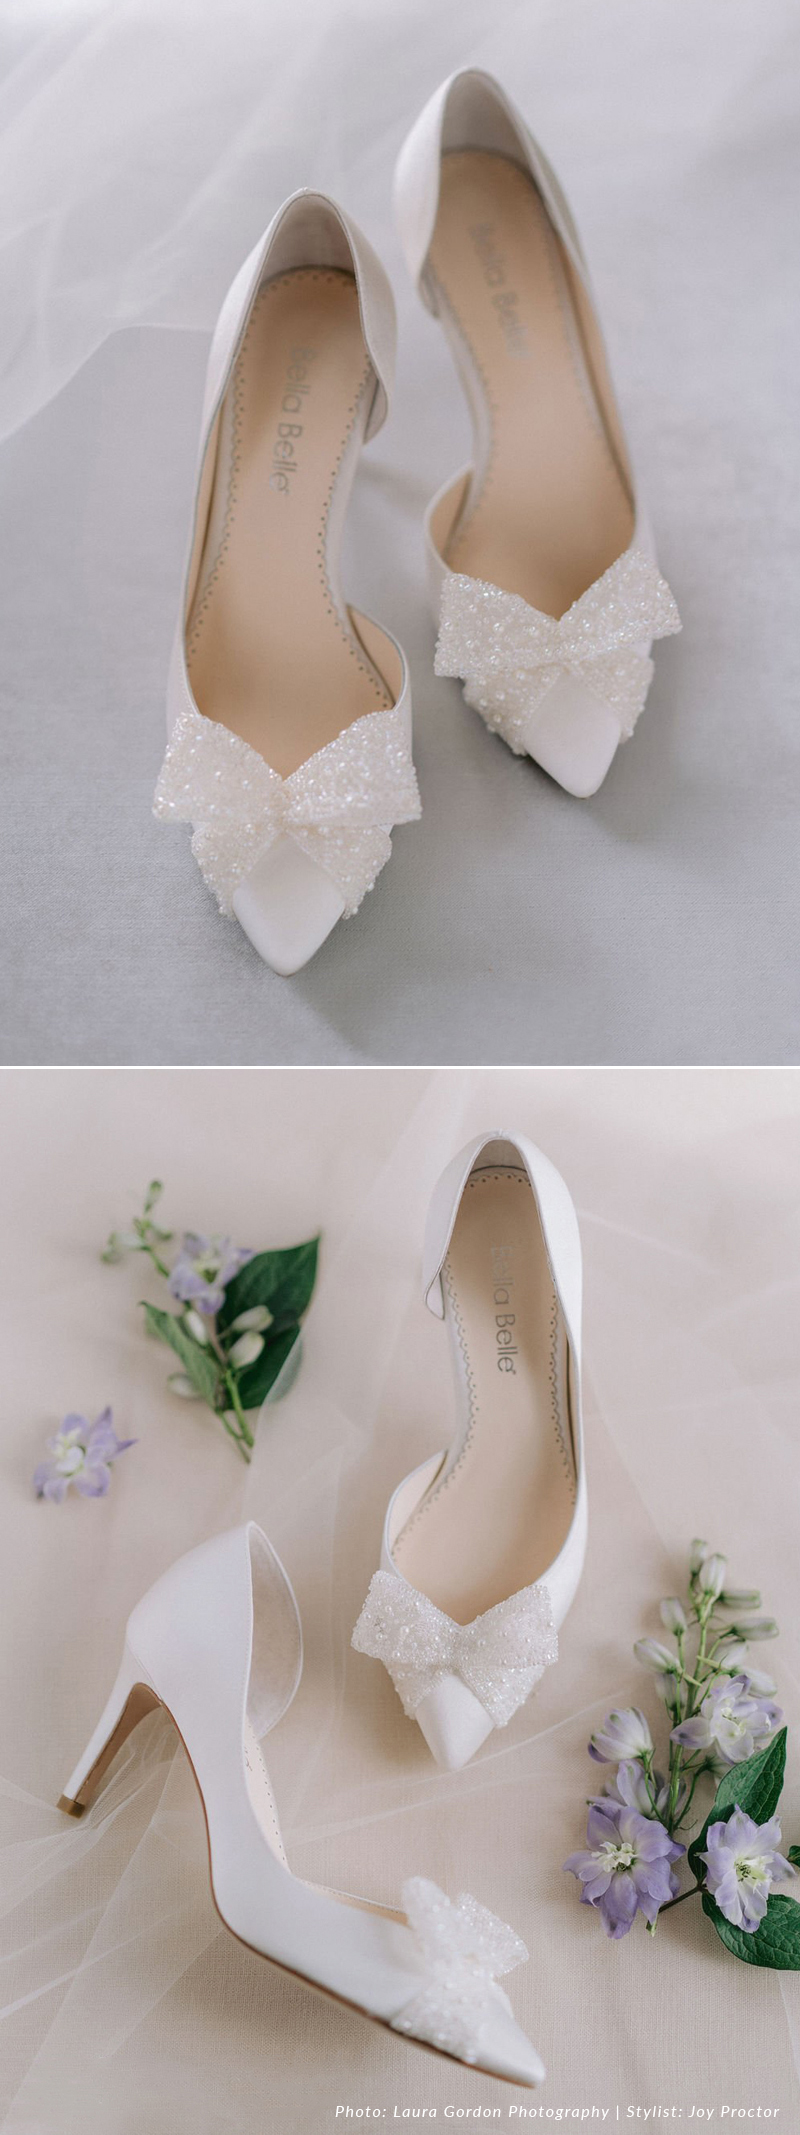 D'Orsay Ivory Pump With Beaded Bow